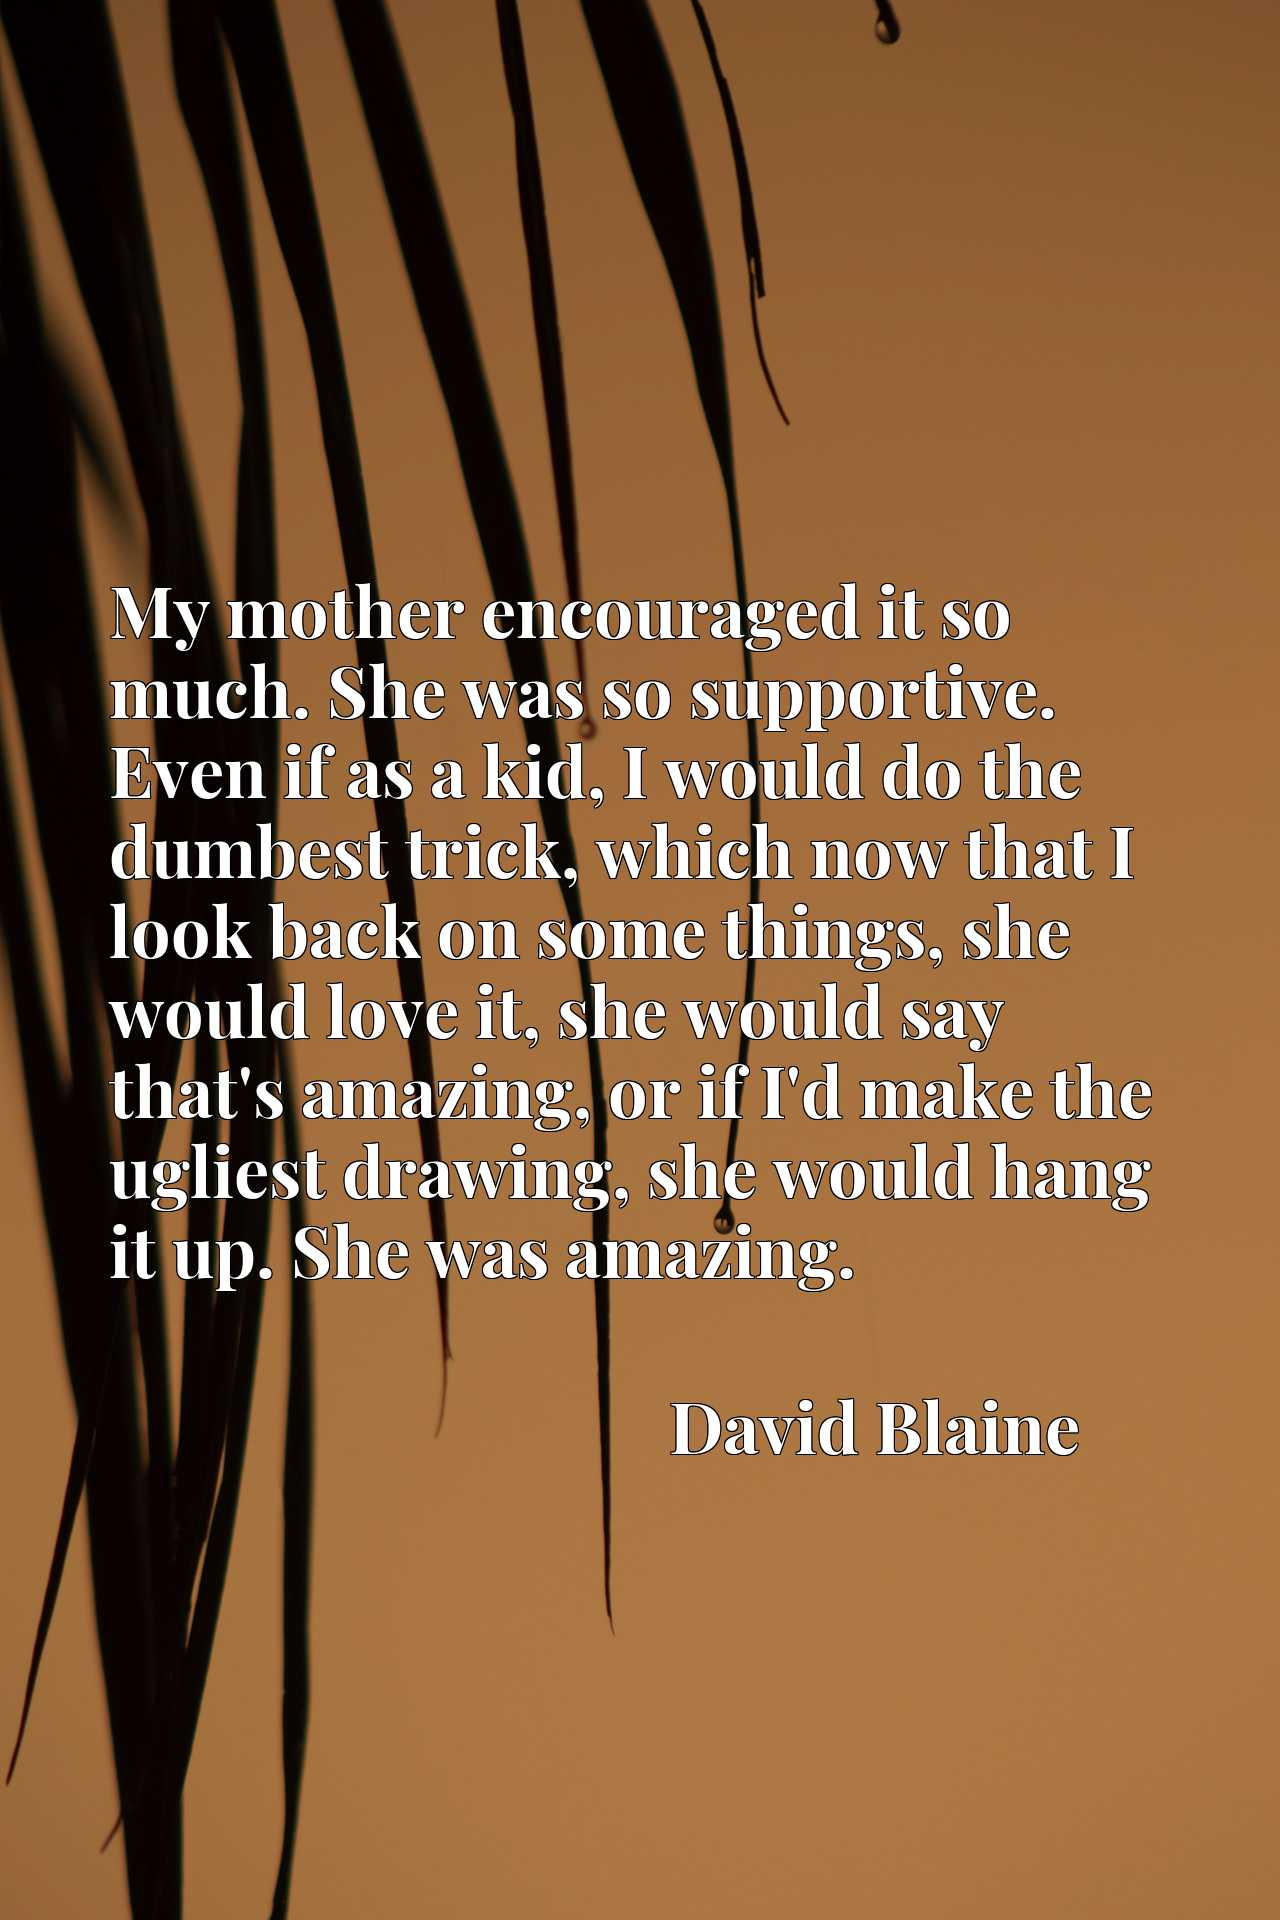 My mother encouraged it so much. She was so supportive. Even if as a kid, I would do the dumbest trick, which now that I look back on some things, she would love it, she would say that's amazing, or if I'd make the ugliest drawing, she would hang it up. She was amazing.